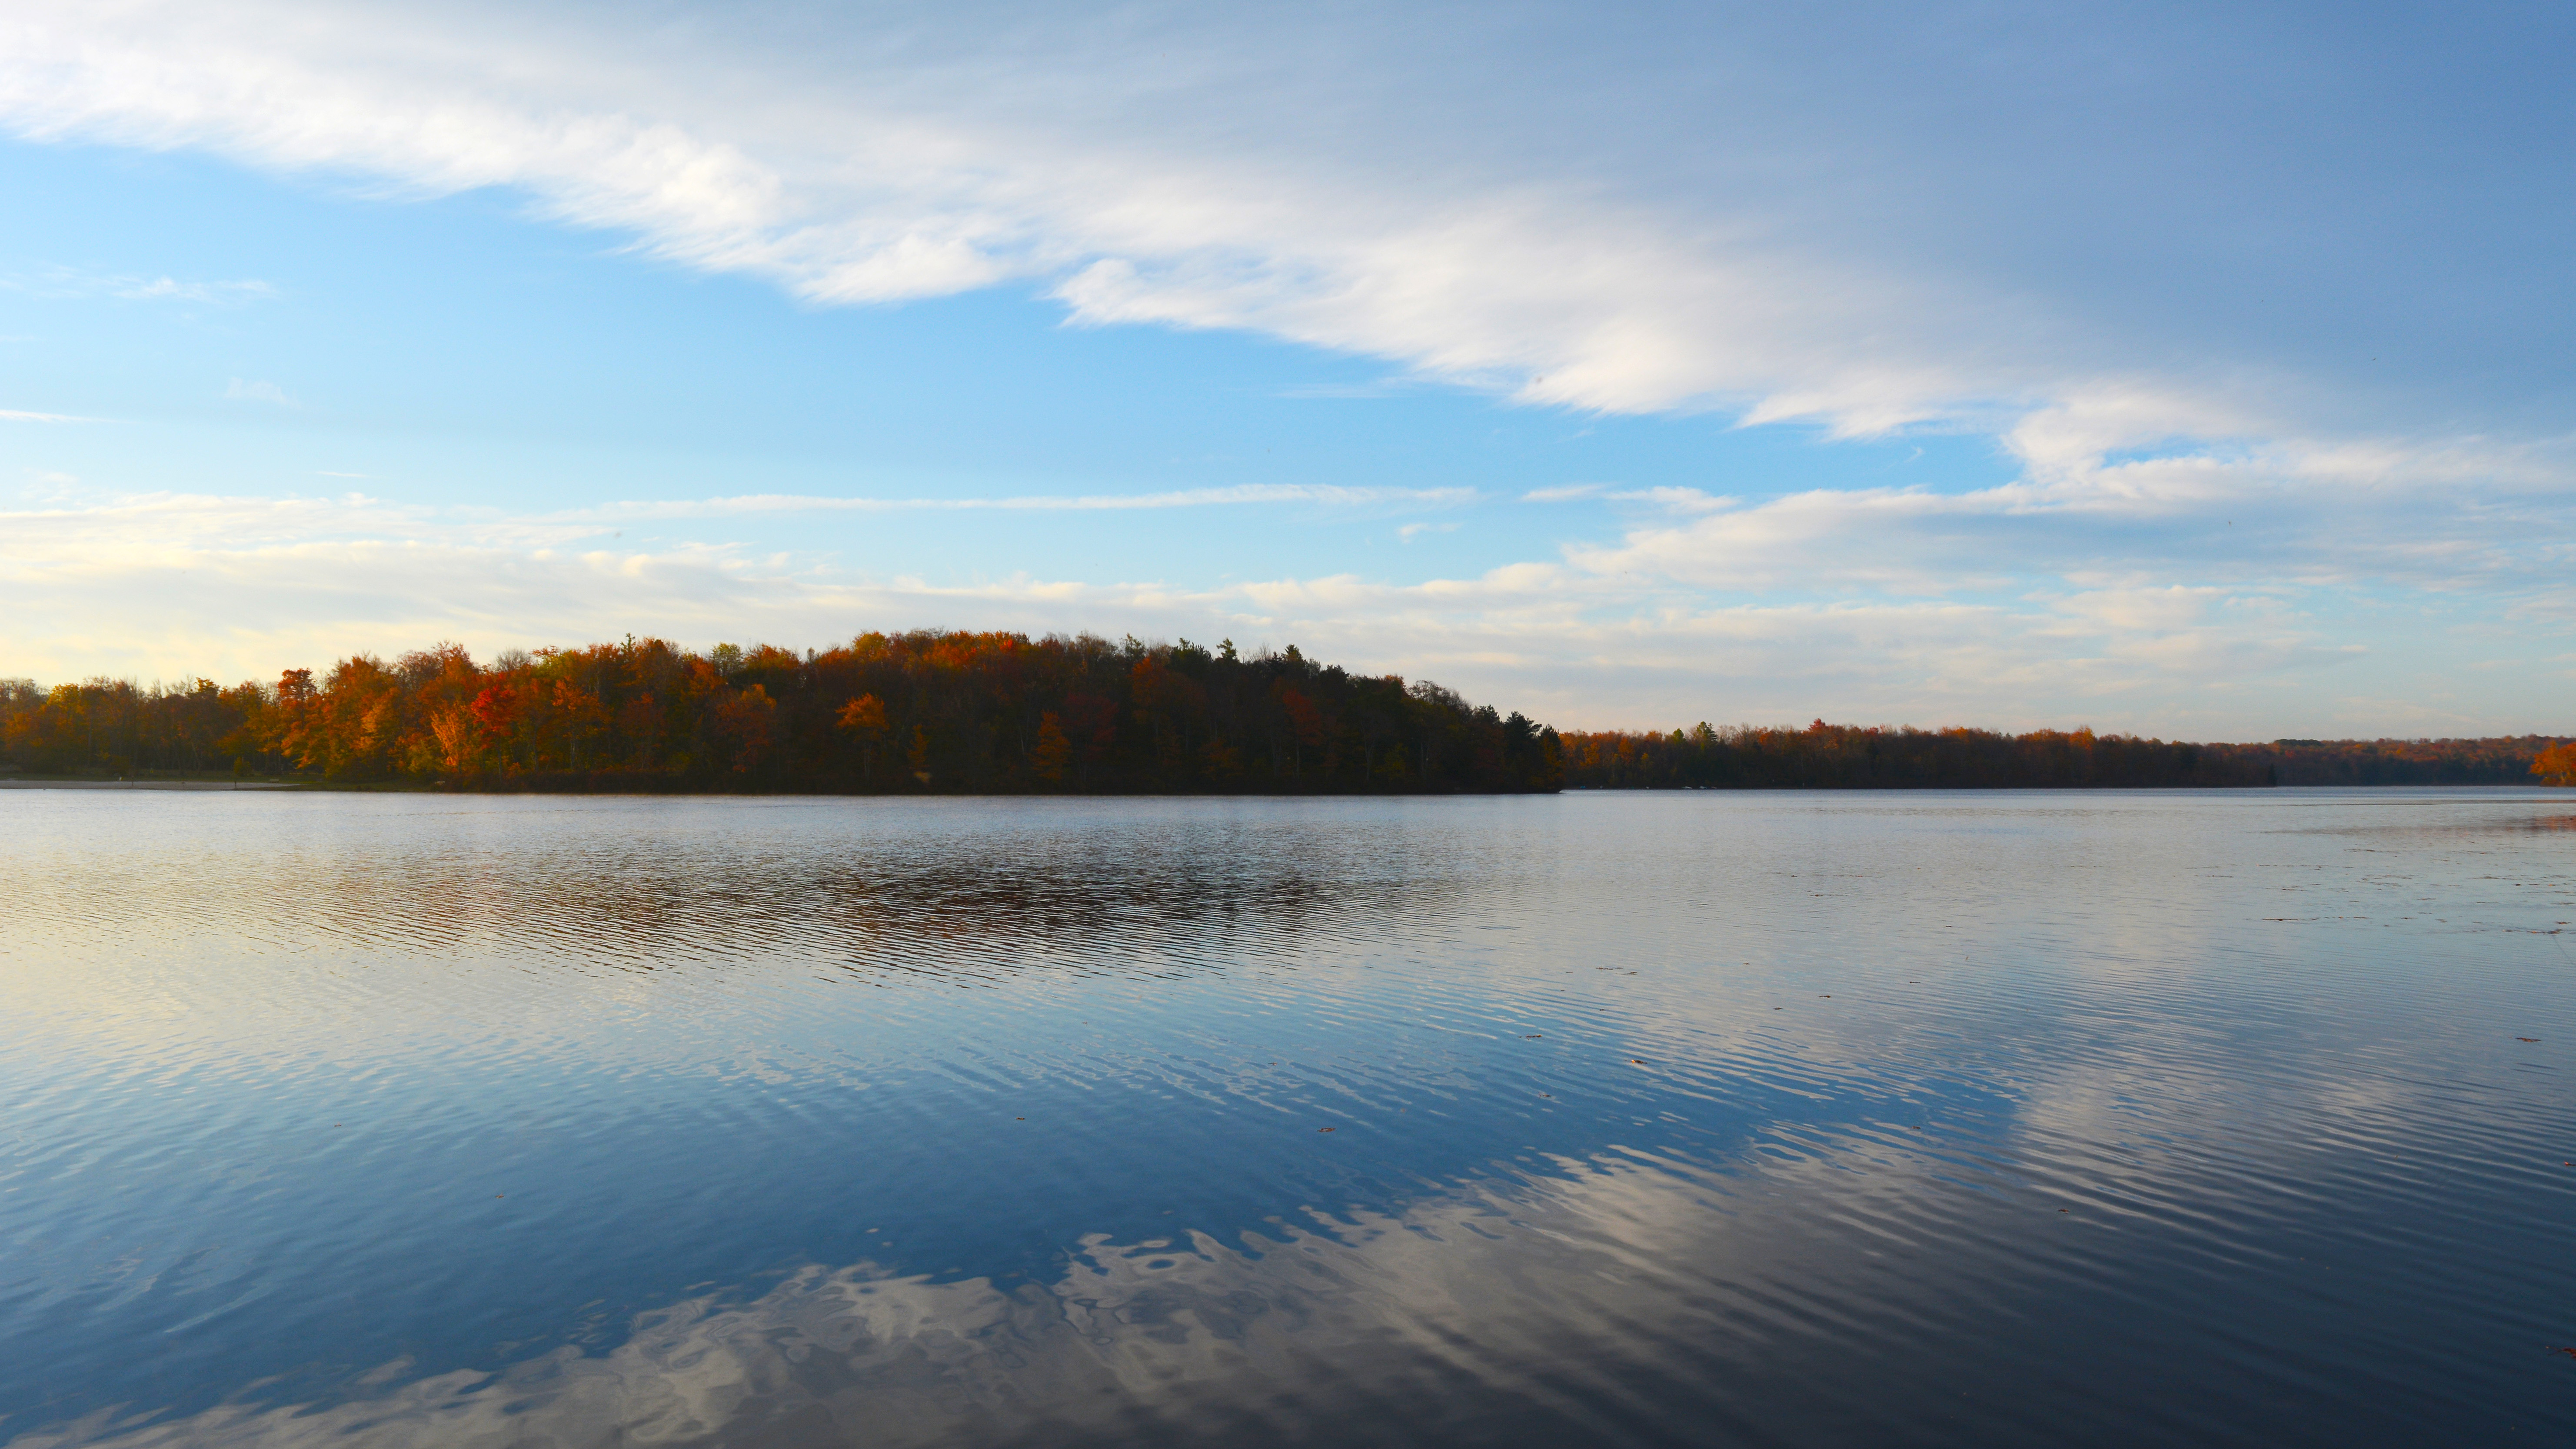 The view of colorful trees across Tobyhanna Lake at sunrise